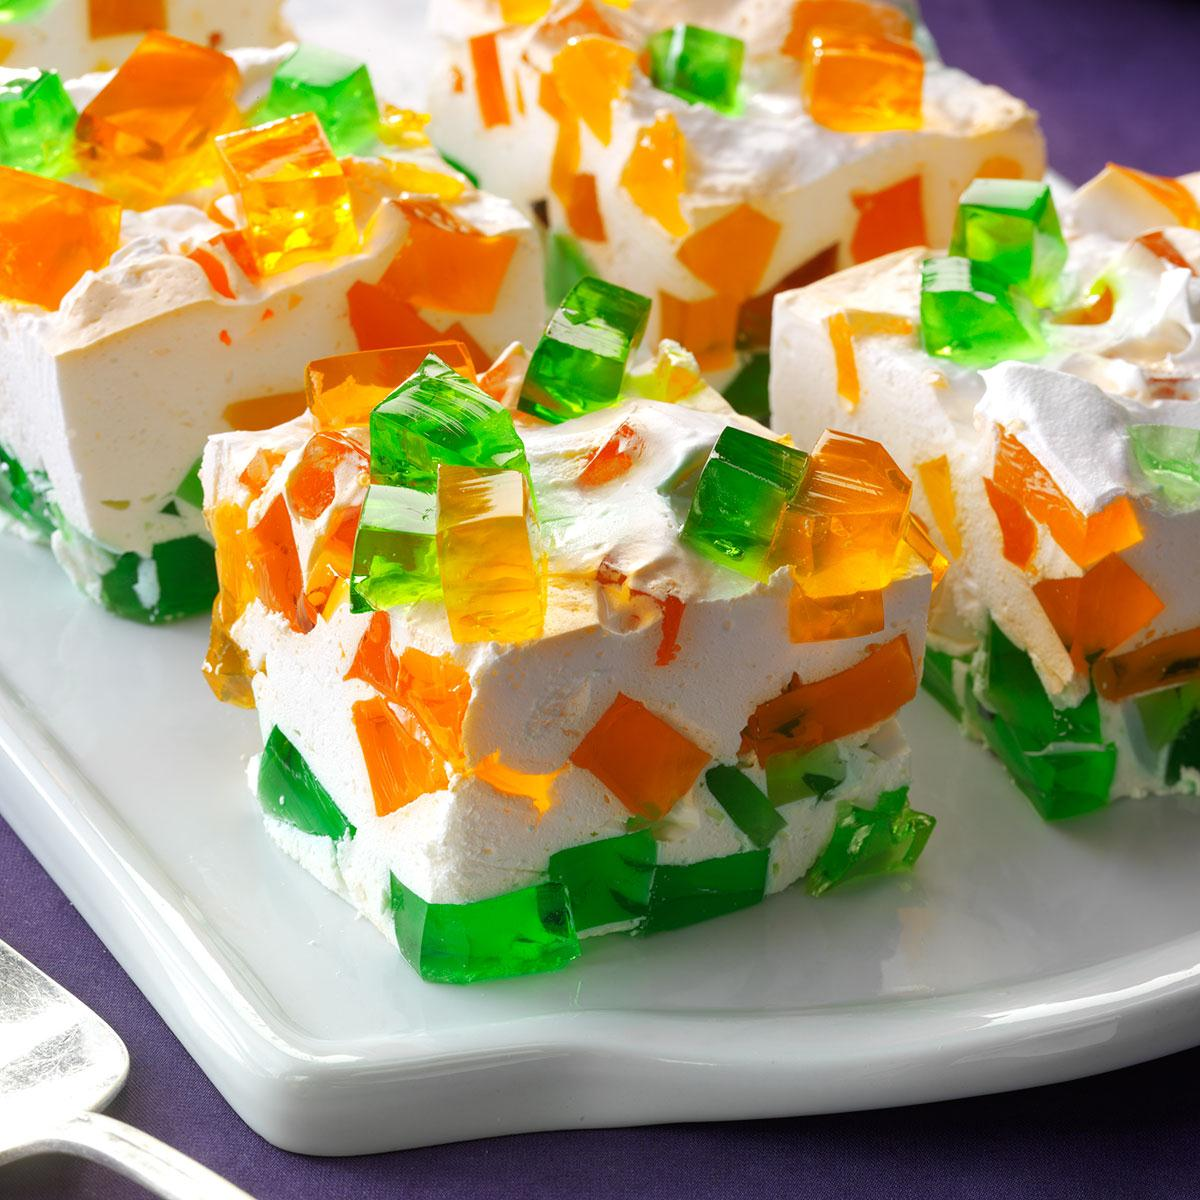 Stained Glass Gelatin Recipe